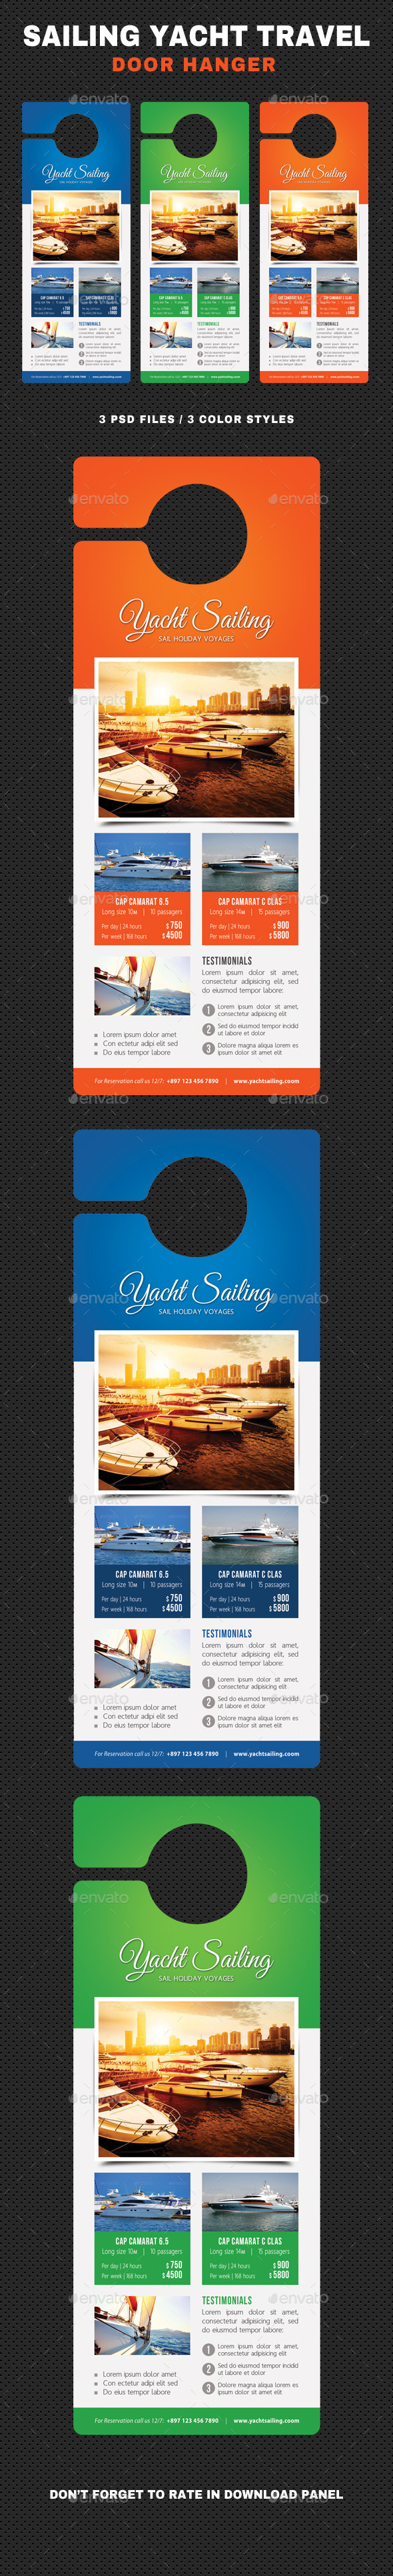 Sailing Yacht Travel Door Hanger V02 - Events Flyers